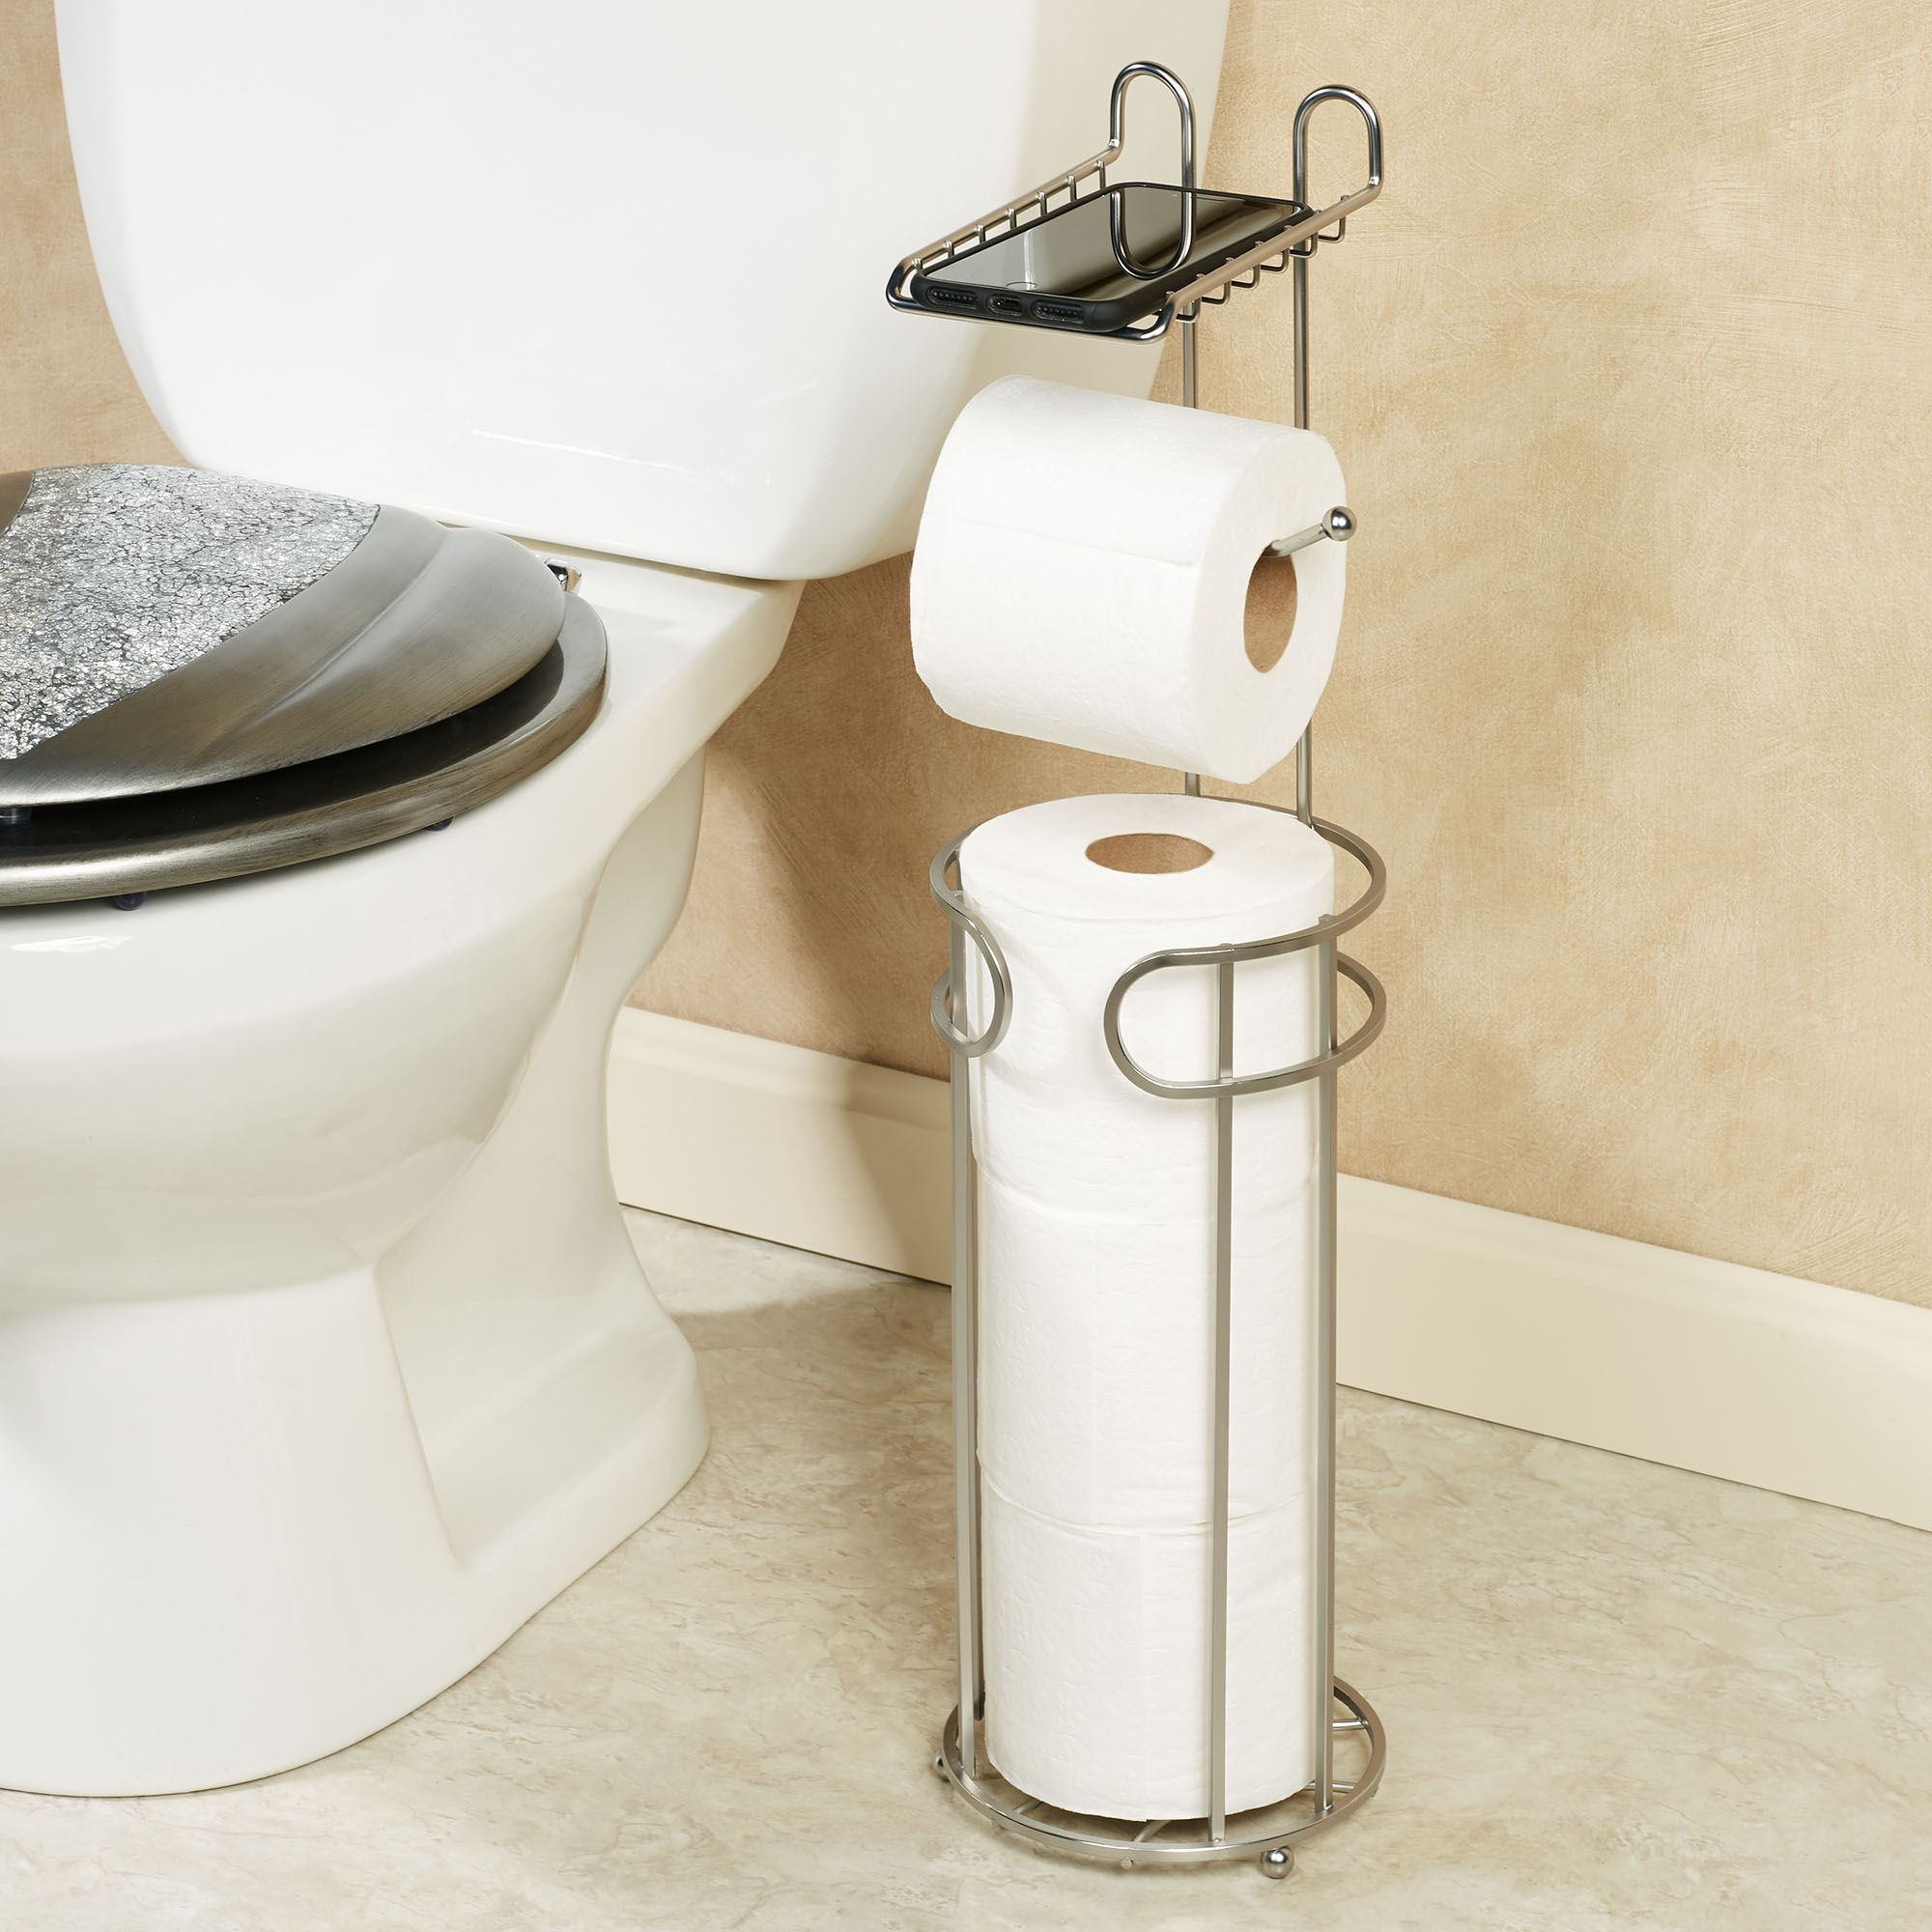 Toilet Paper Holder Unique Timeless Toilet Paper Holder Stand With Phone Tray